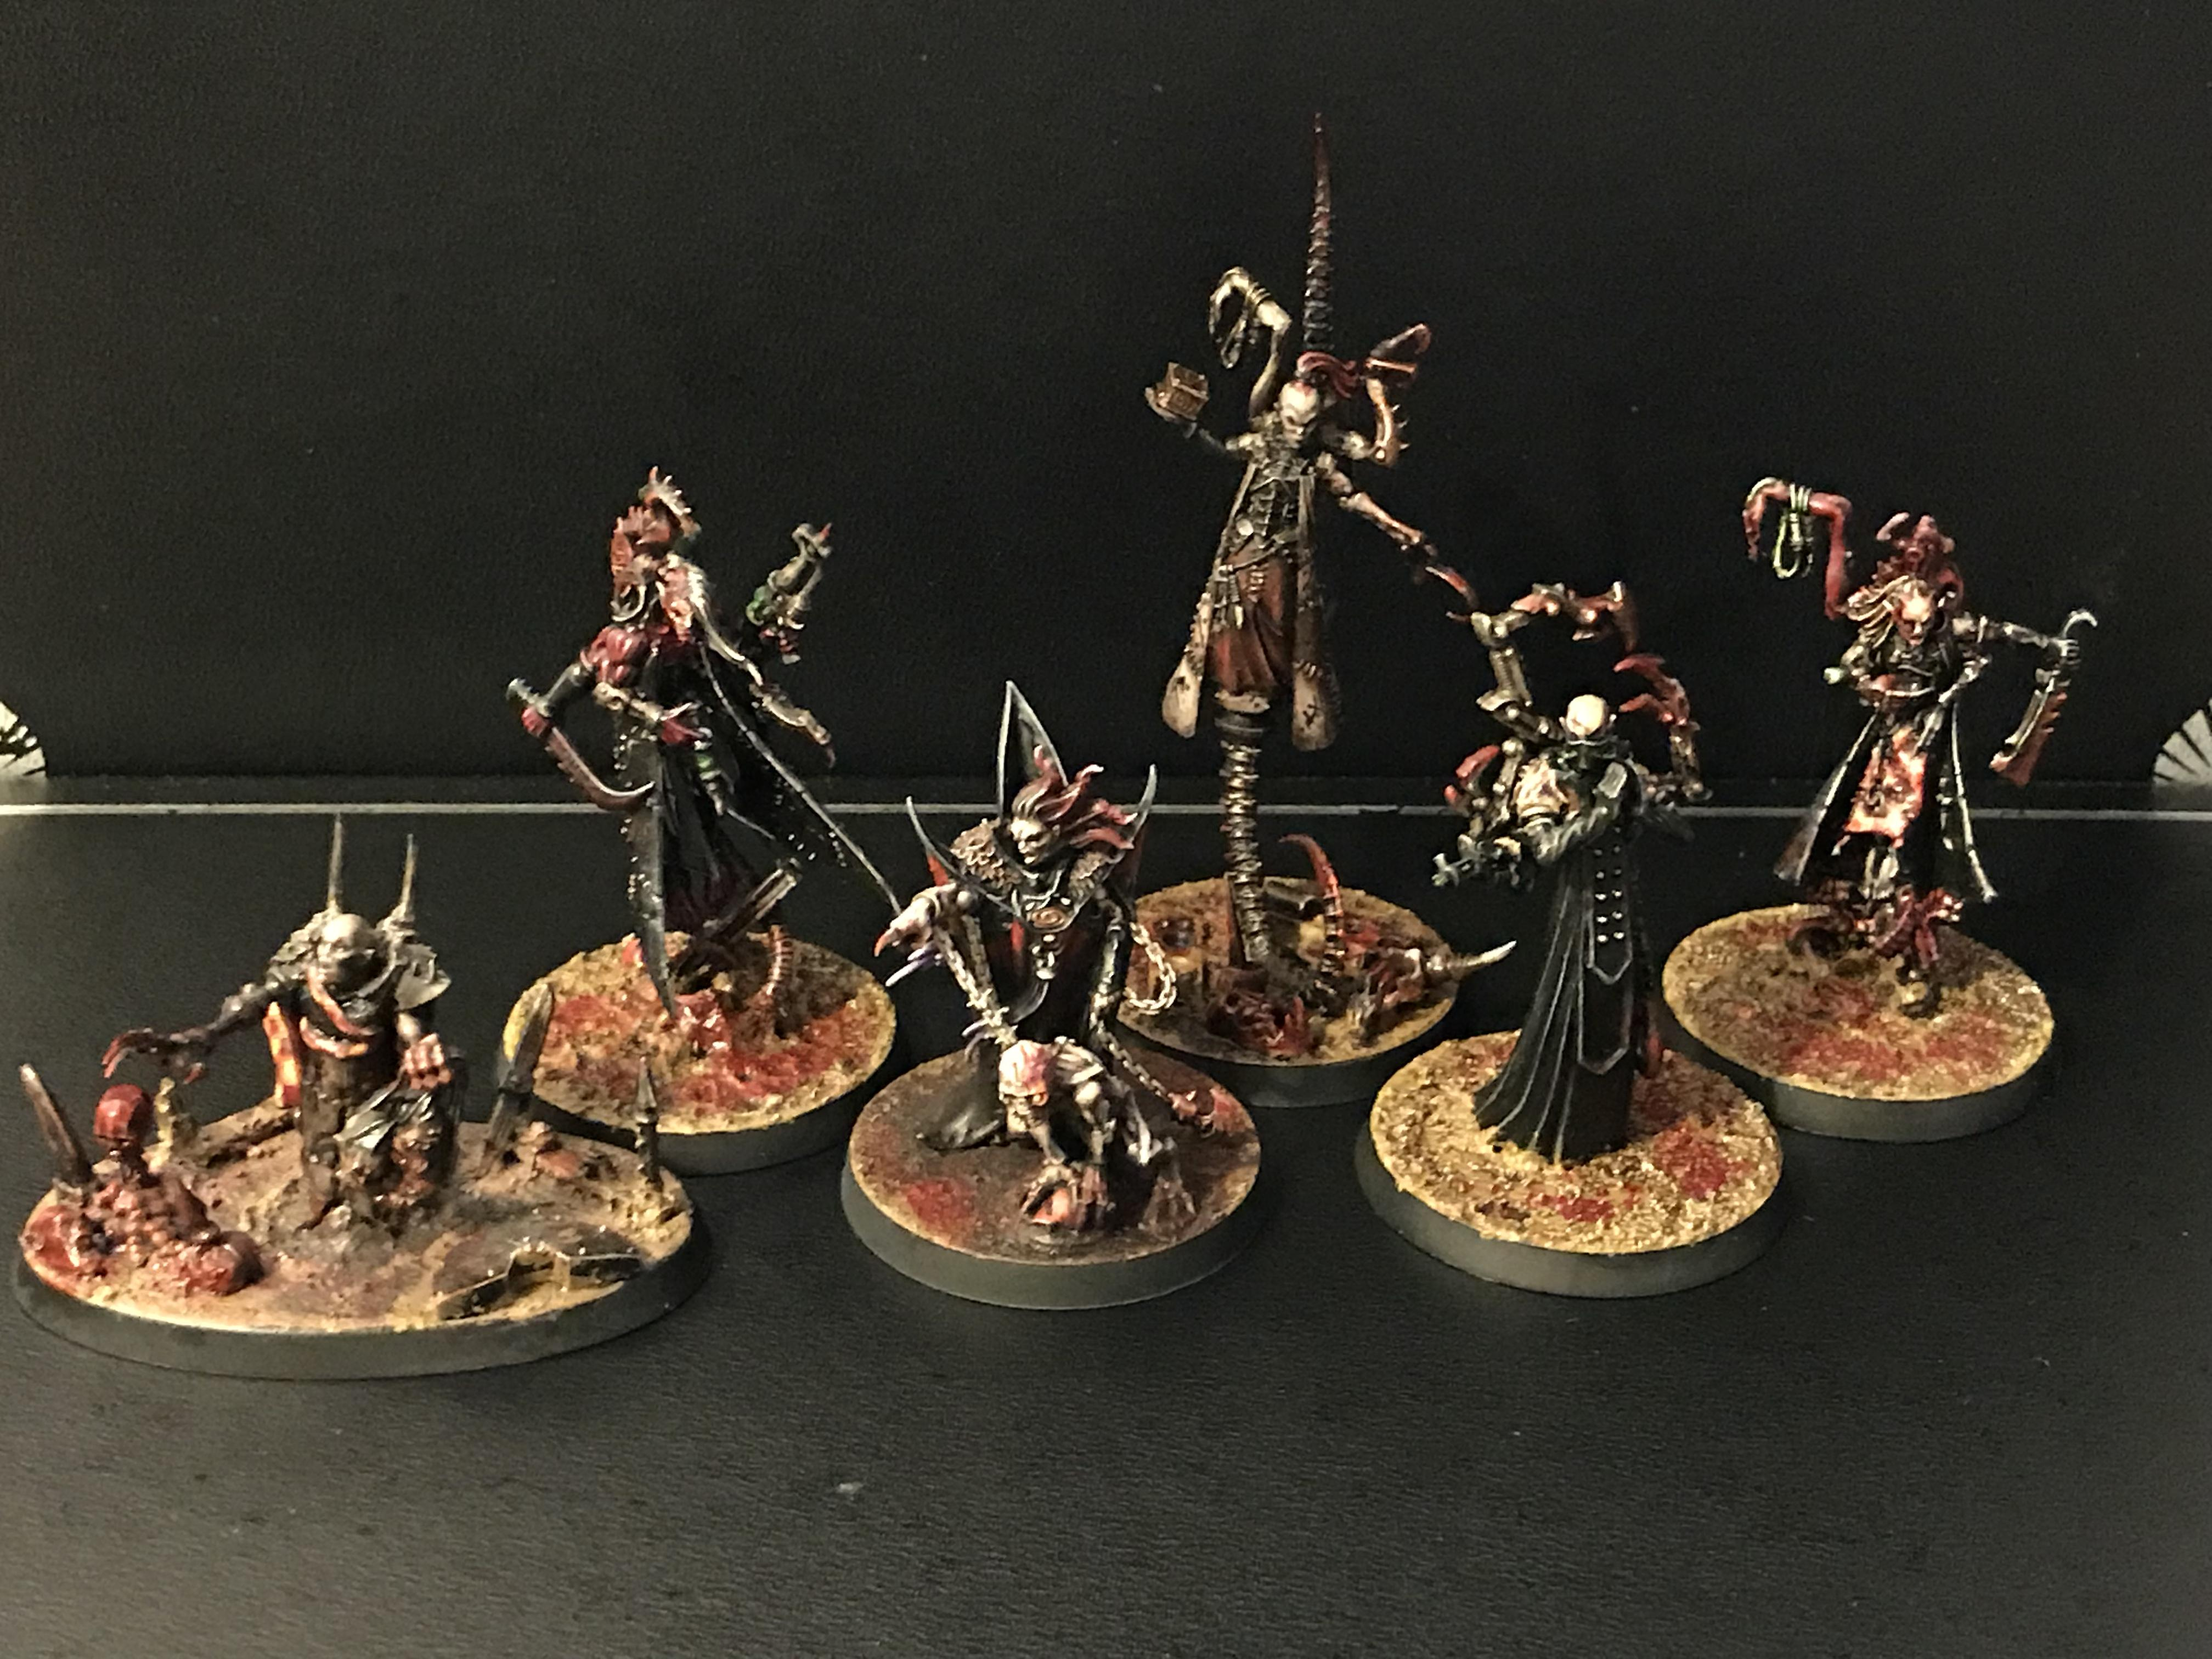 Acothyst, Aeldari, Ancient, Blood, Bloodbath, Bloody, Cell, Cells, Cenobite, Chaos, Ciratrix, Circle, City, Combat, Commorragh, Commorrights, Coven, Covenlord, Covens, Cult, Daemons, Dark, Darkness, Drugs, Drukhari, Eldar, Elves, Evil, Far, Flesh, Future, Grim, Grisly, Grotesque, Grotesques, Haemonculi, Haemonculus, Hell, Horrors, Kabal, Kabalite, Kablilites, Kill, Master, Monstrous, Mutated, Narrative, Of, Pain, Pleasure, Prince, Prophets, Raider, Raiders, Rakarth, Realspace, Rp, Sculptor, Sixth, Skirmish, Slaanesh, Surgeon, Team, Teams, Terror, Torment, Torments, Torture, Torturer, Torturers, Trophies, Twisted, Urien, Valonian, Vile, Warhammer 40,000, Warhammer Fantasy, Warriors, Work In Progress, Wracks, Wych, Wyches